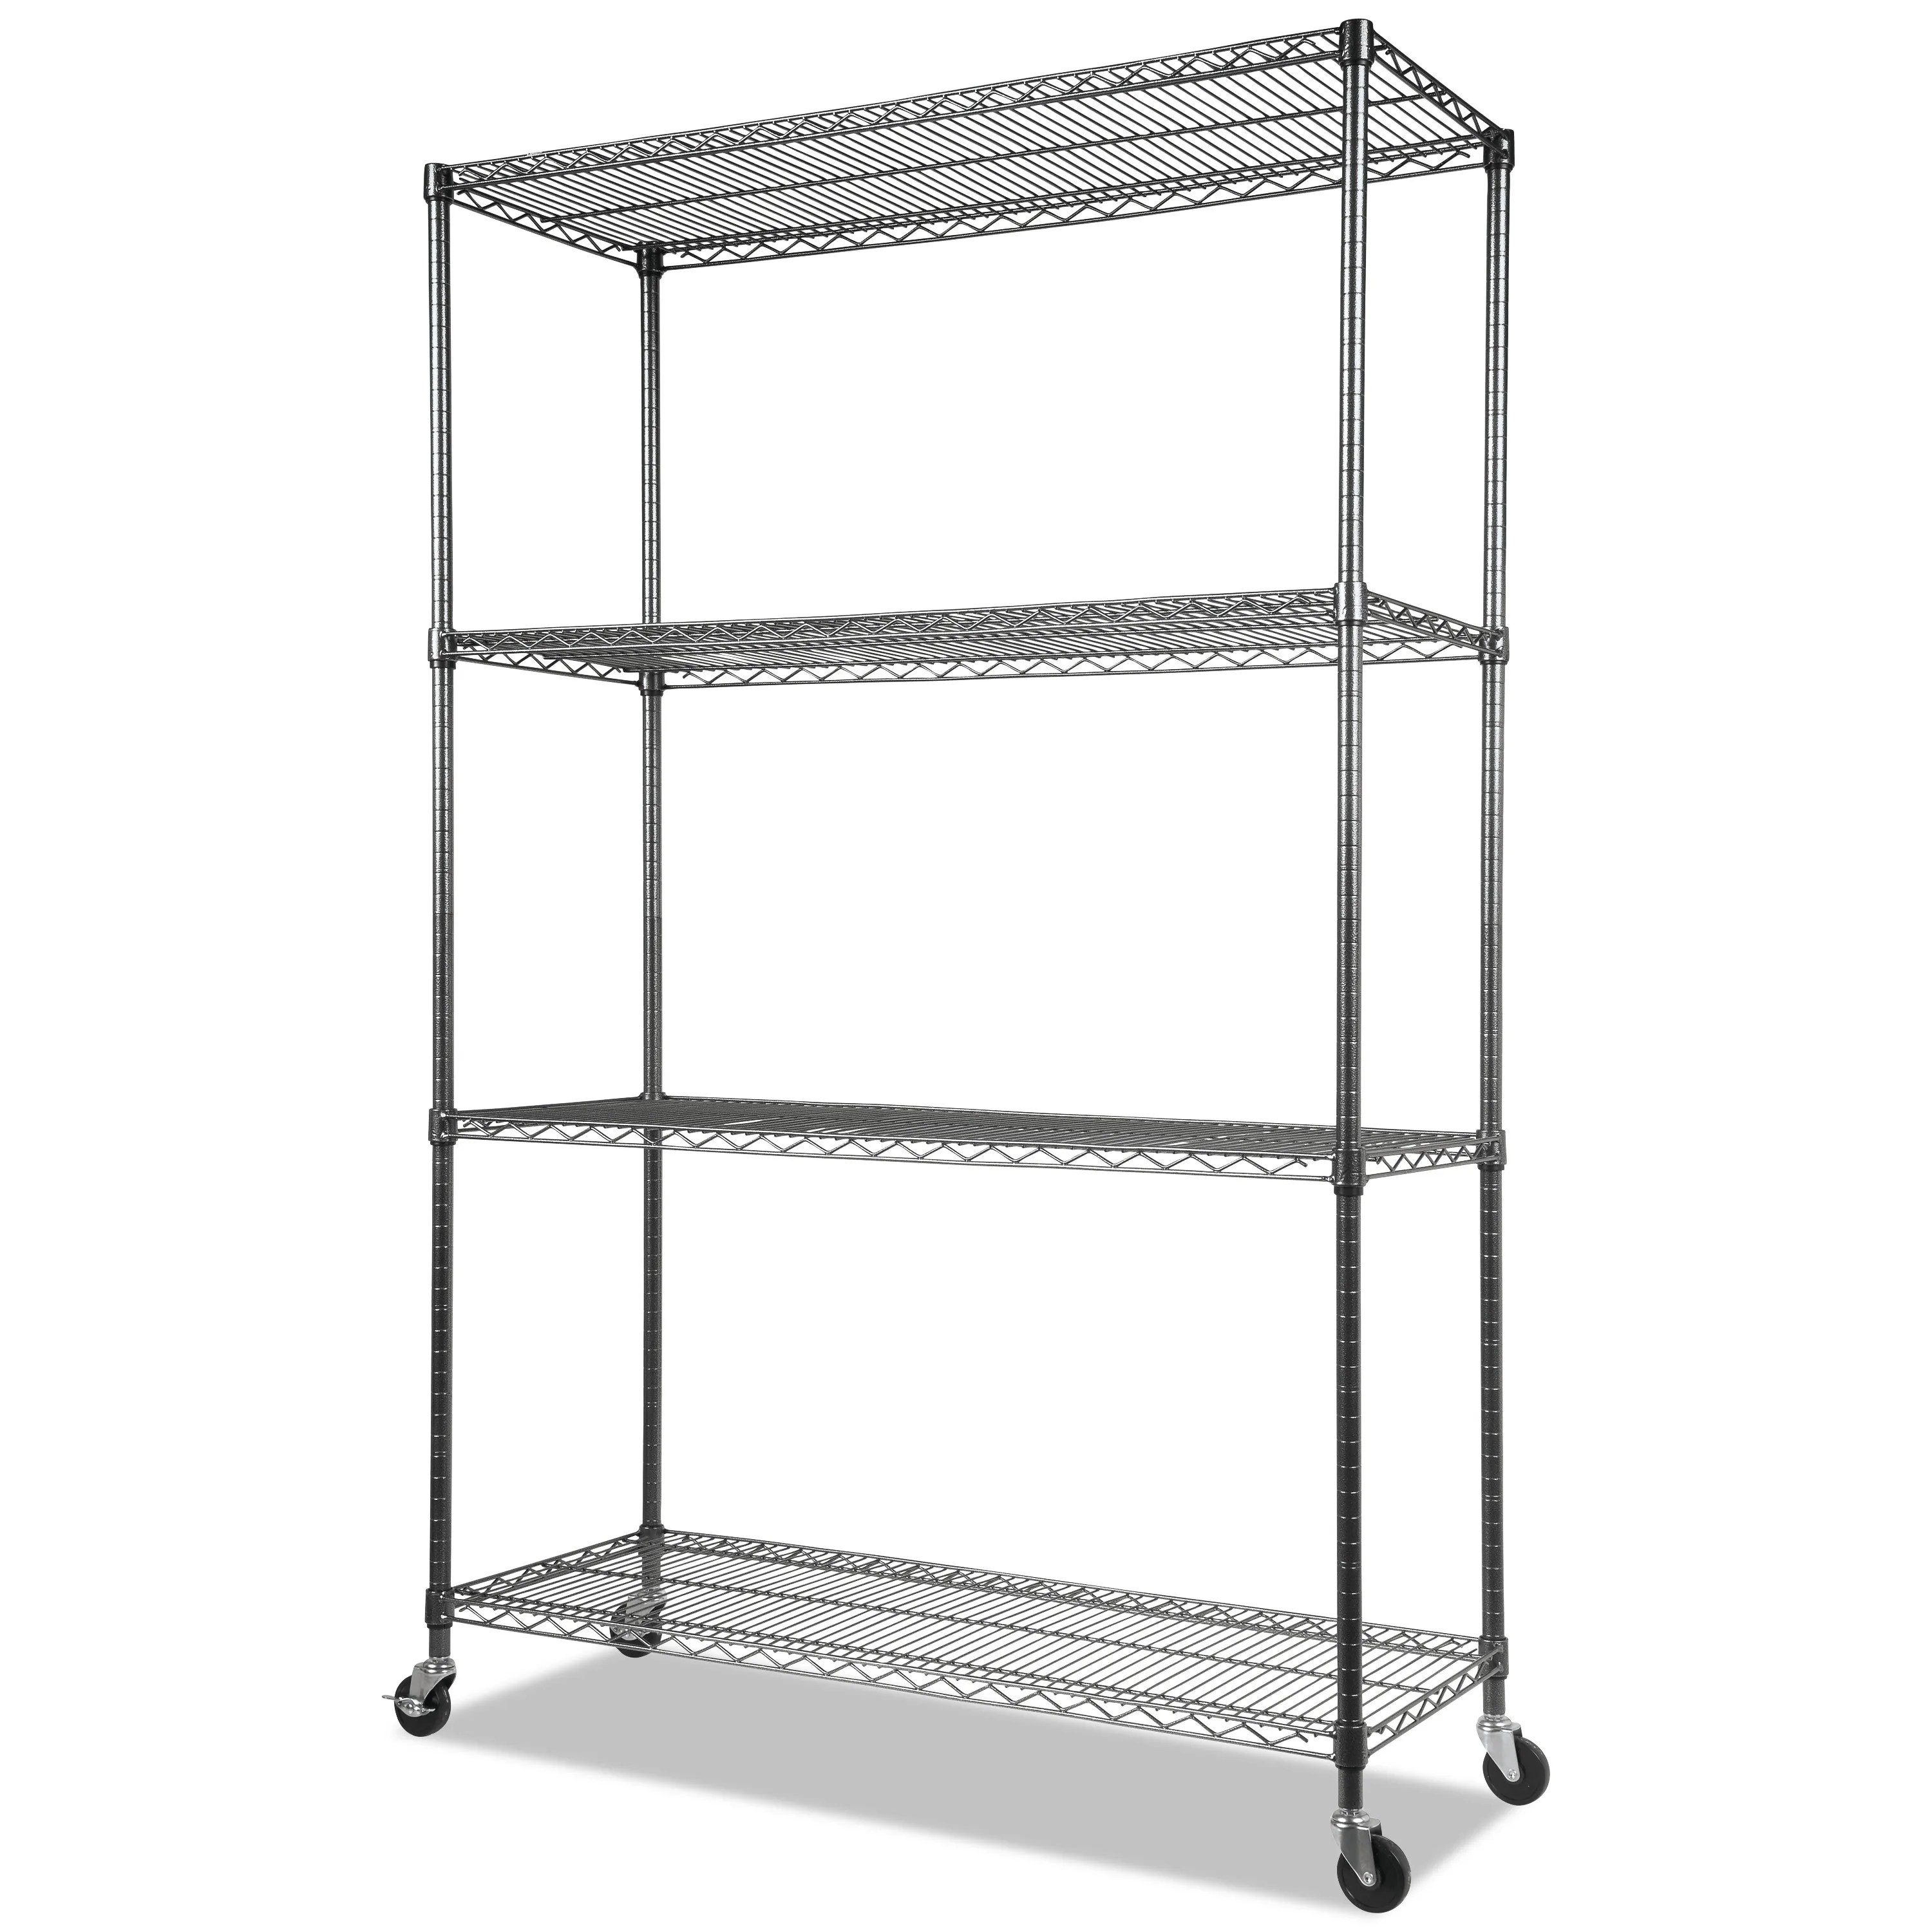 Mesh Shelving Complete Wire Shelving Unit W Caster Four Shelf 48 X 18 X 72 Black Anthracite